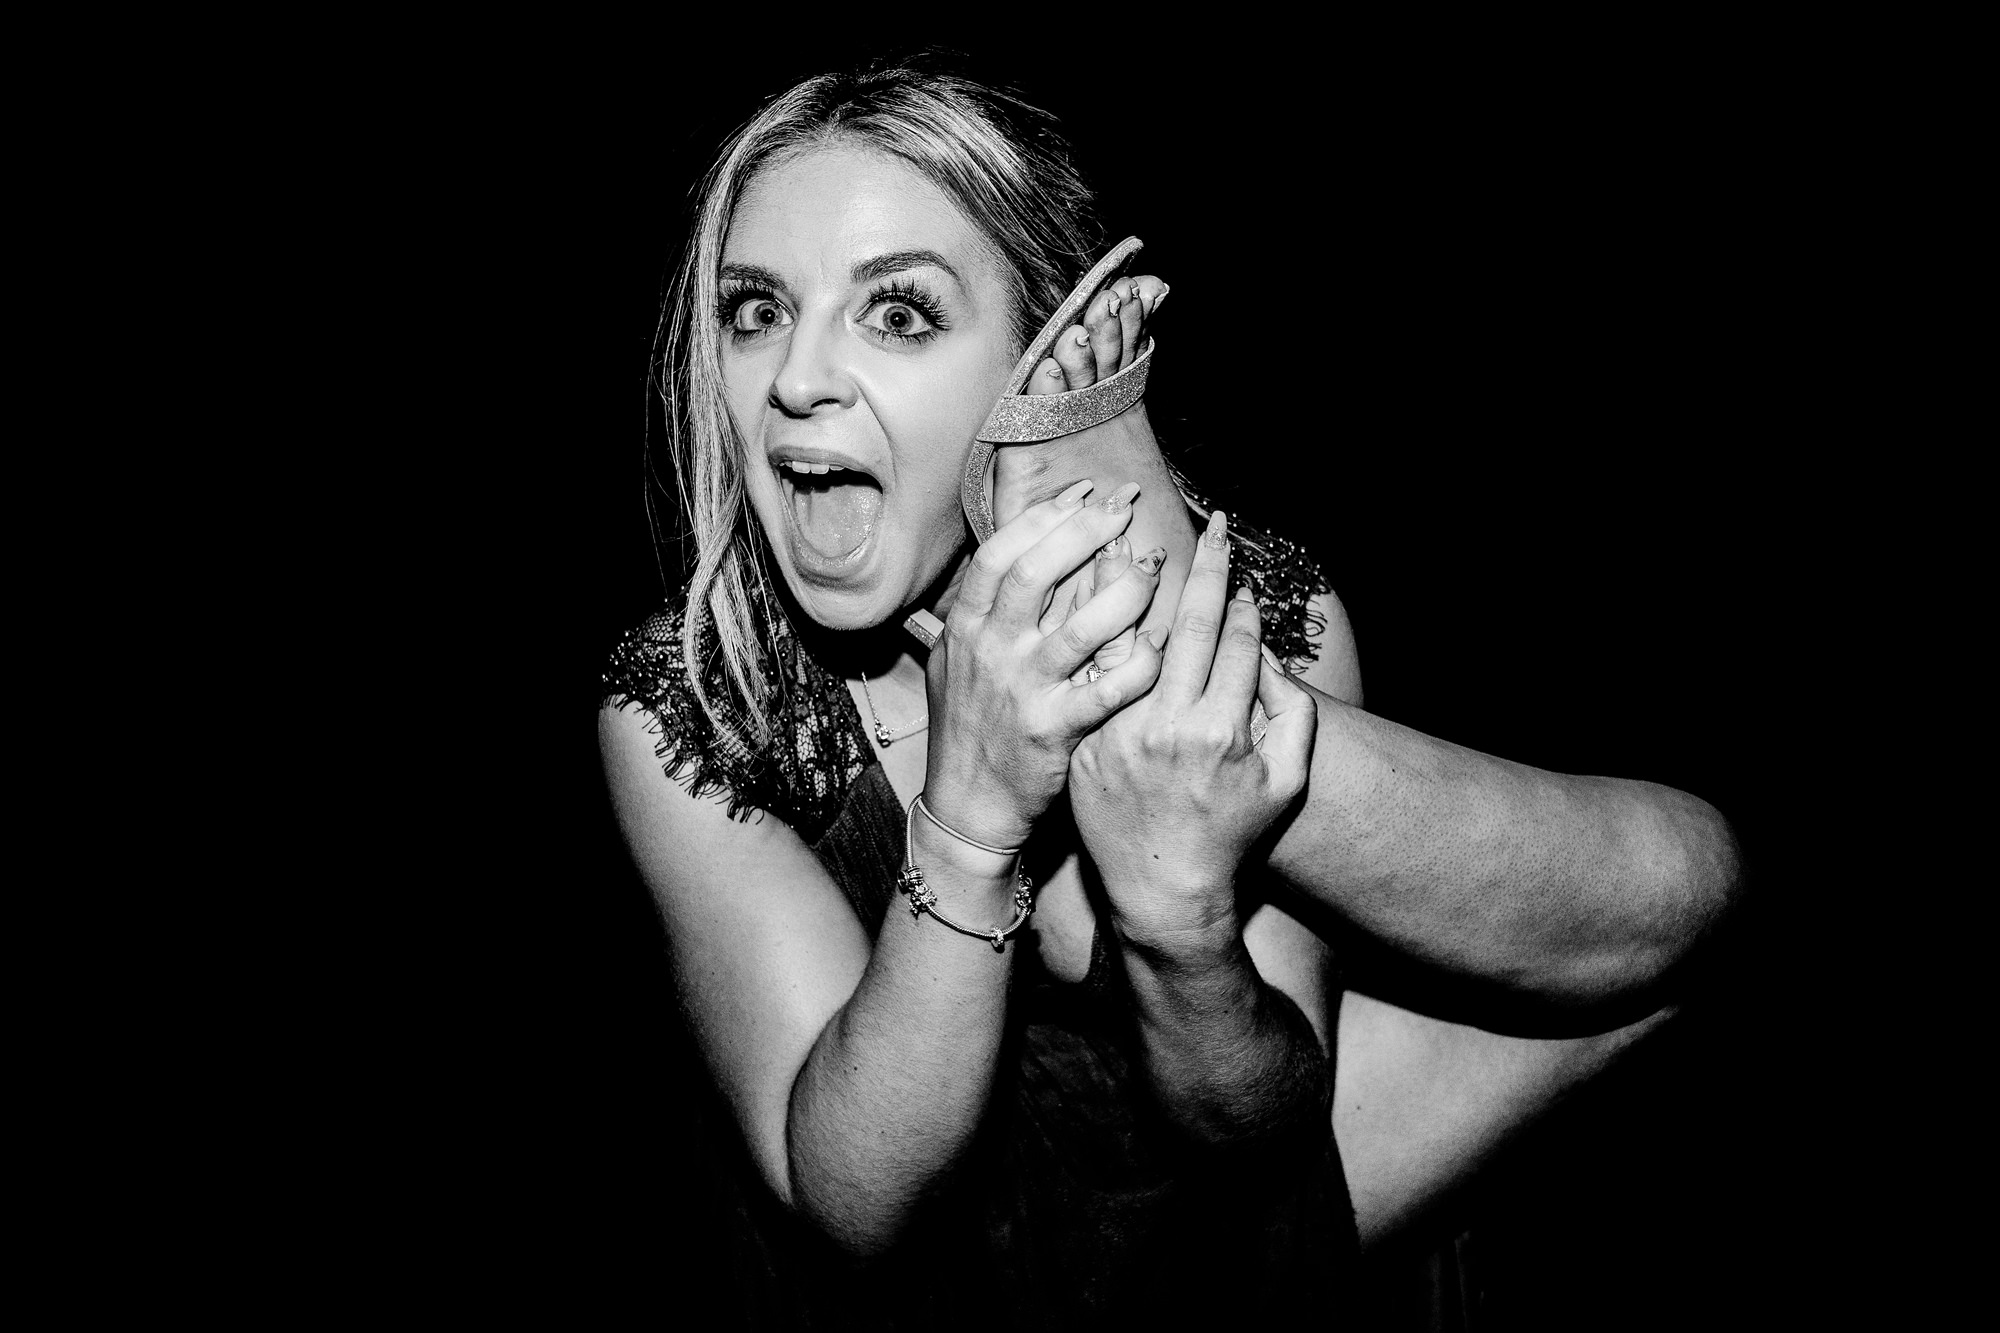 bridesmaid trying to use her own foot as a phone. huntsman inn wedding photography by emma and rich.